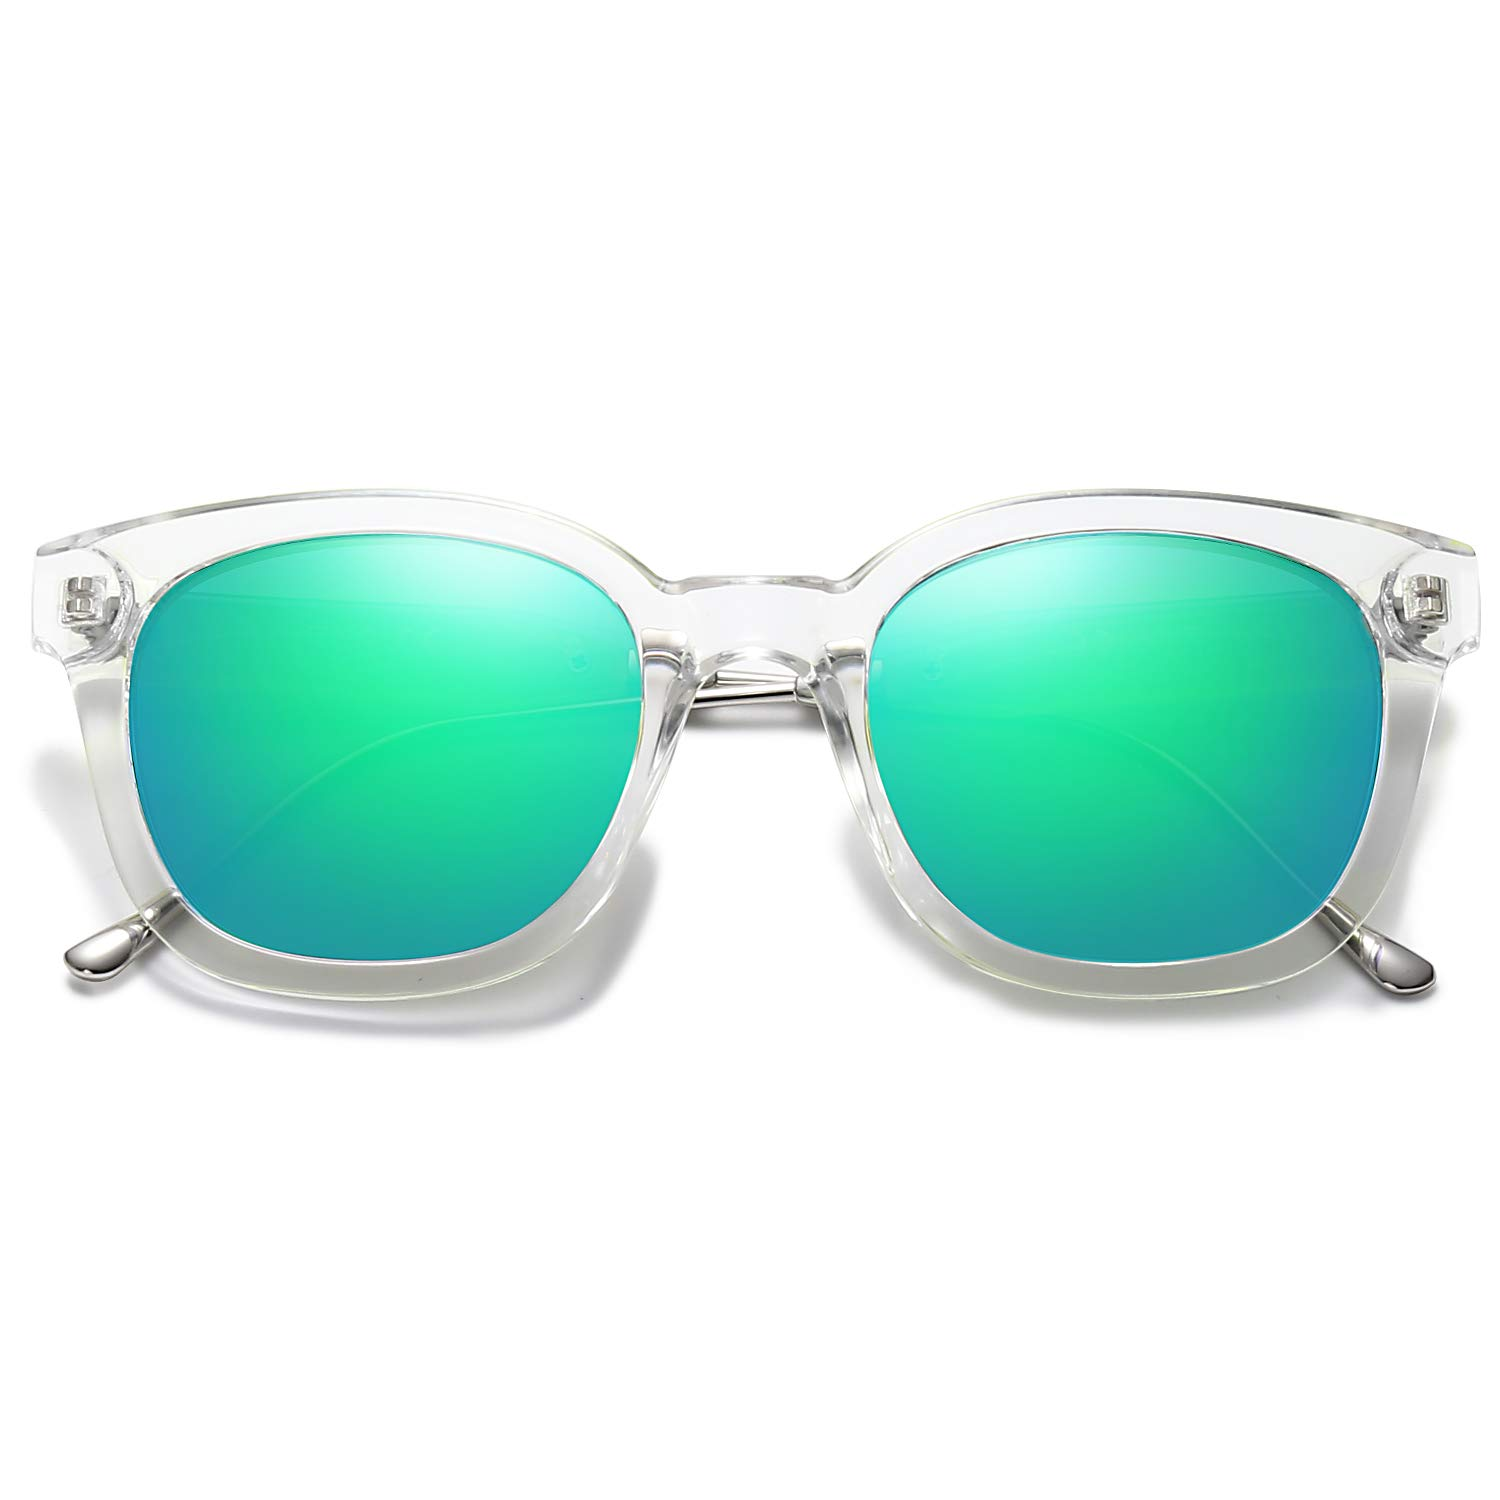 SOJOS Classic Square Polarized Sunglasses Unisex UV400 Mirrored Glasses SJ2050 with Transparent Frame/Green Mirrored Lens by SOJOS